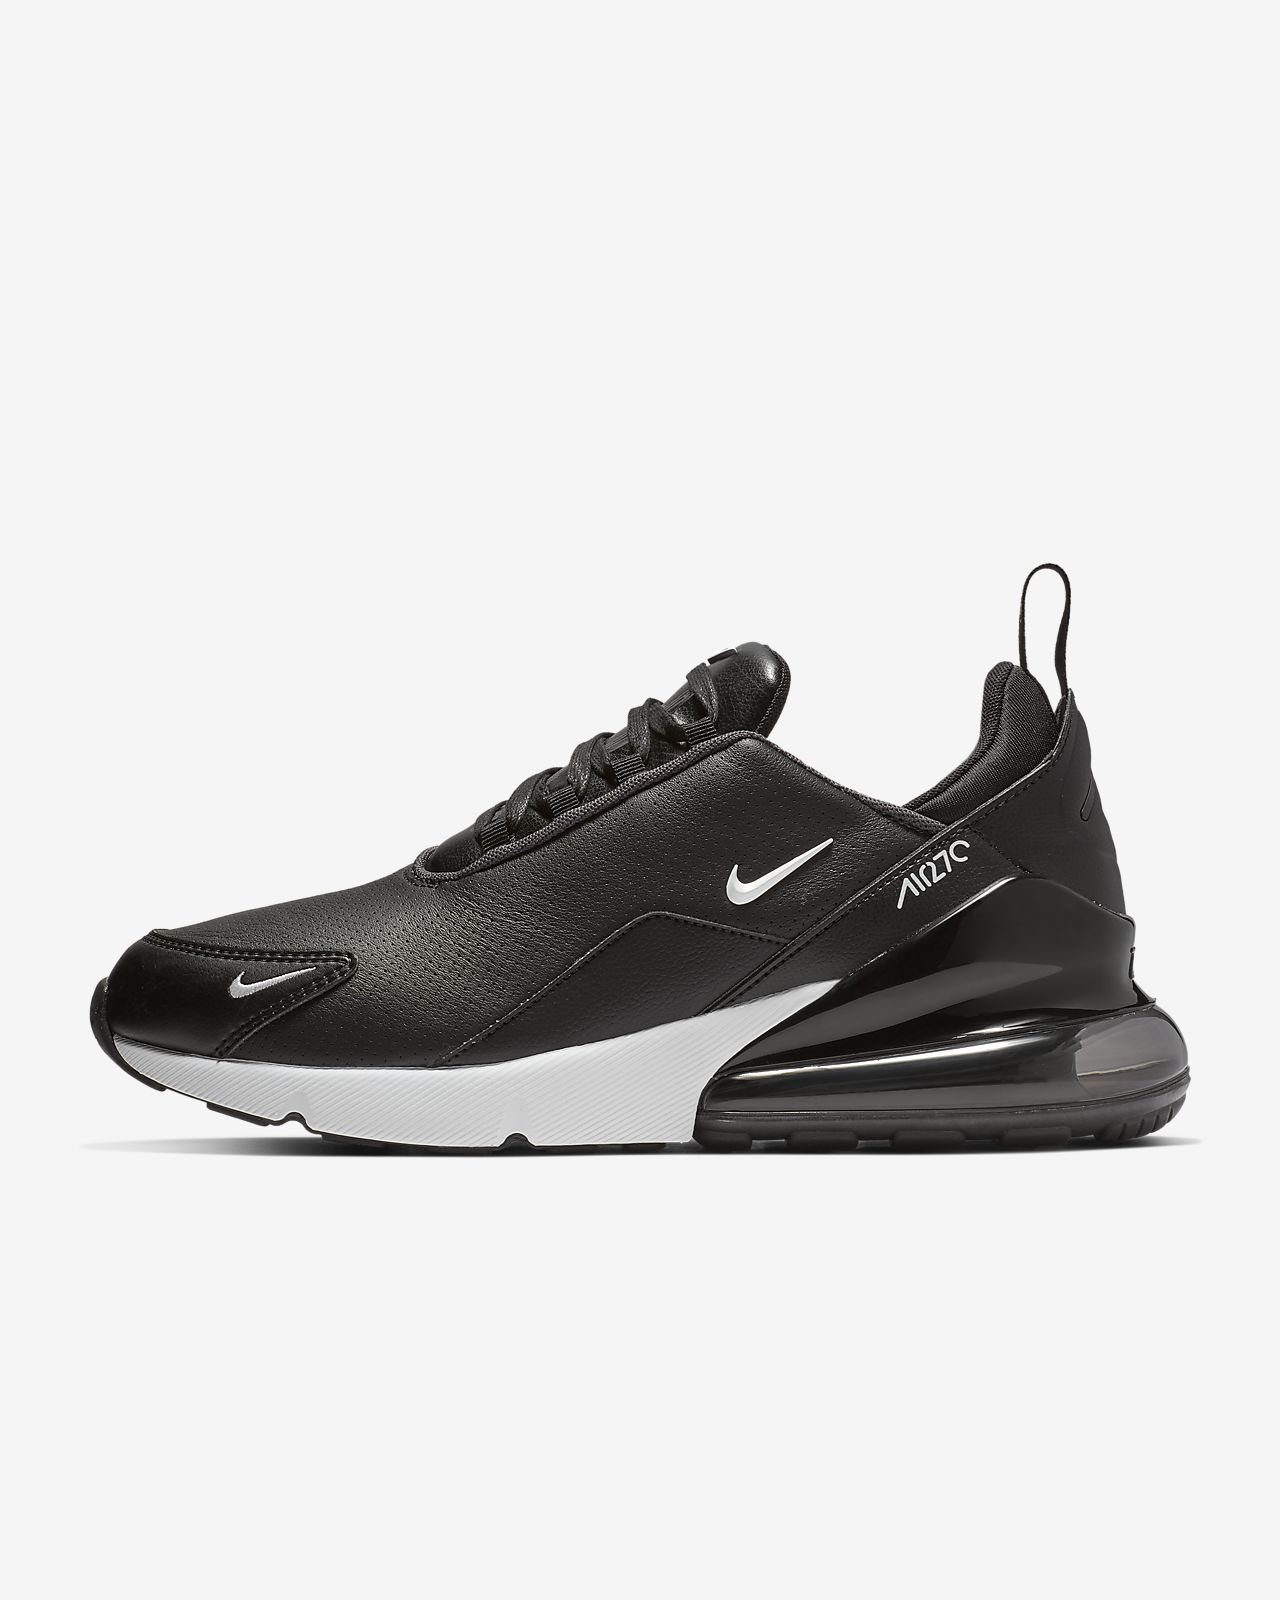 info for b35b3 a4529 ... Nike Air Max 270 Premium Mens Shoe